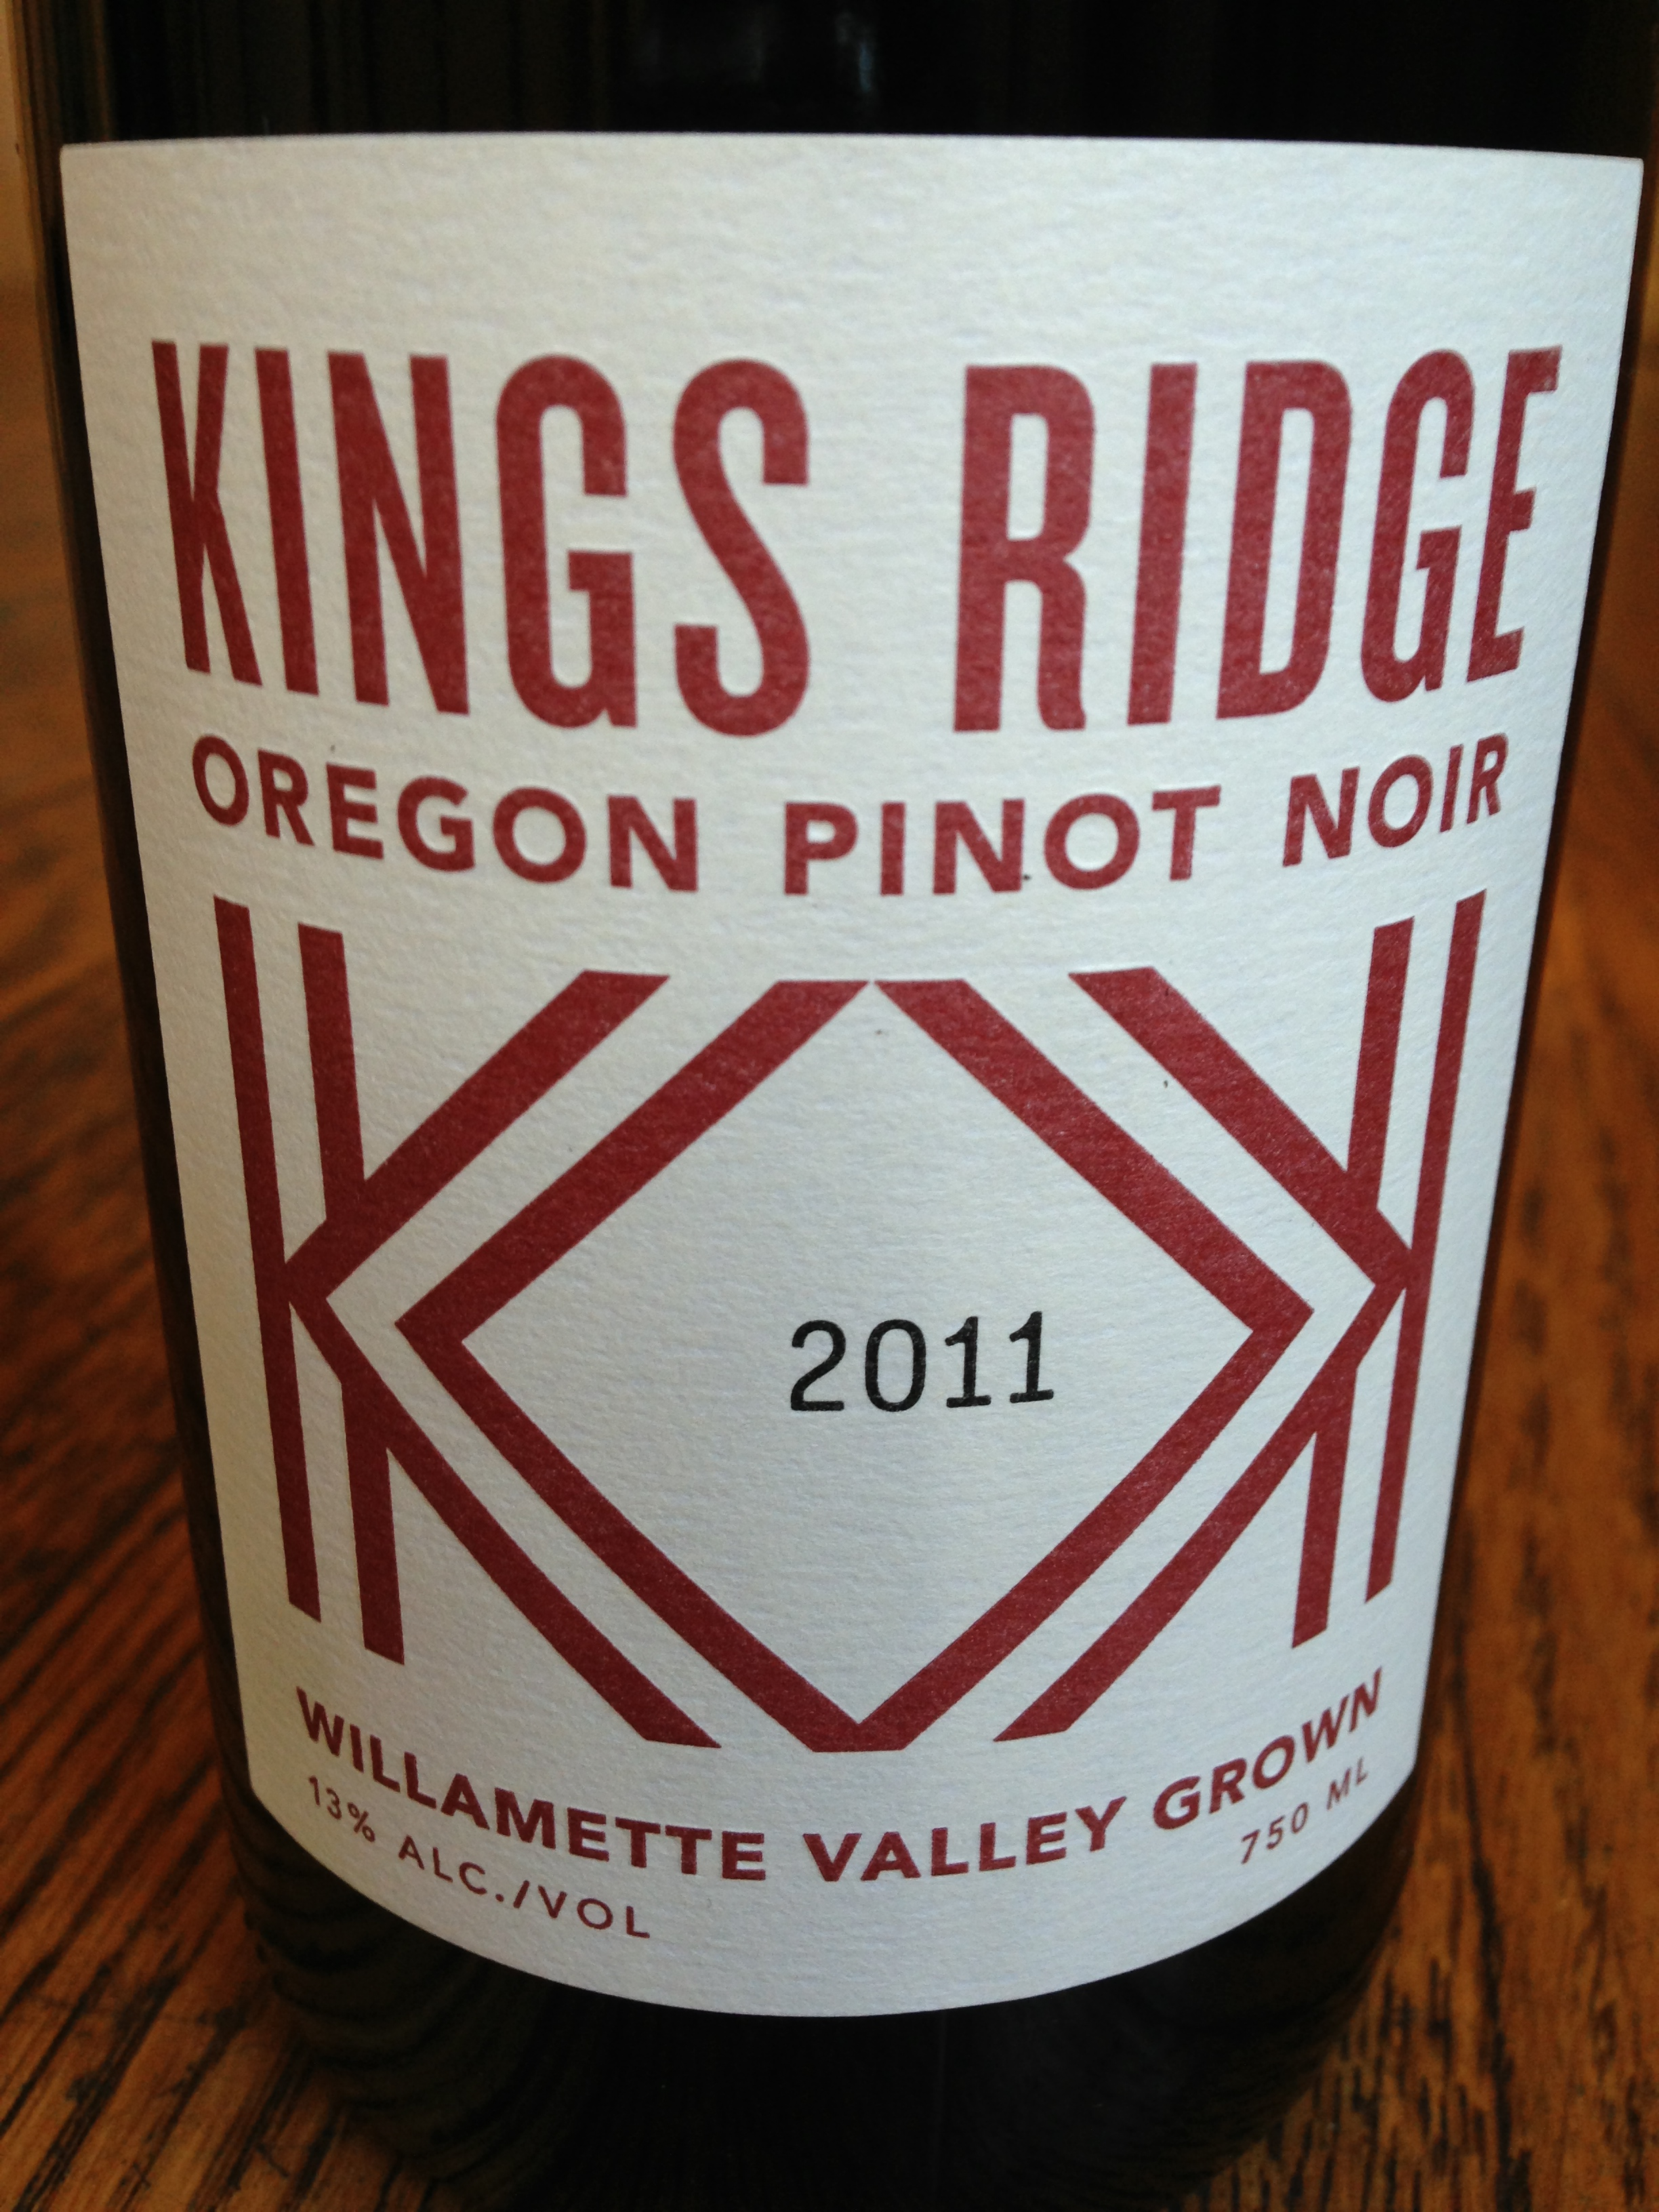 Kings Ridge Oregon Pinot Noir Willamette Valley 2011